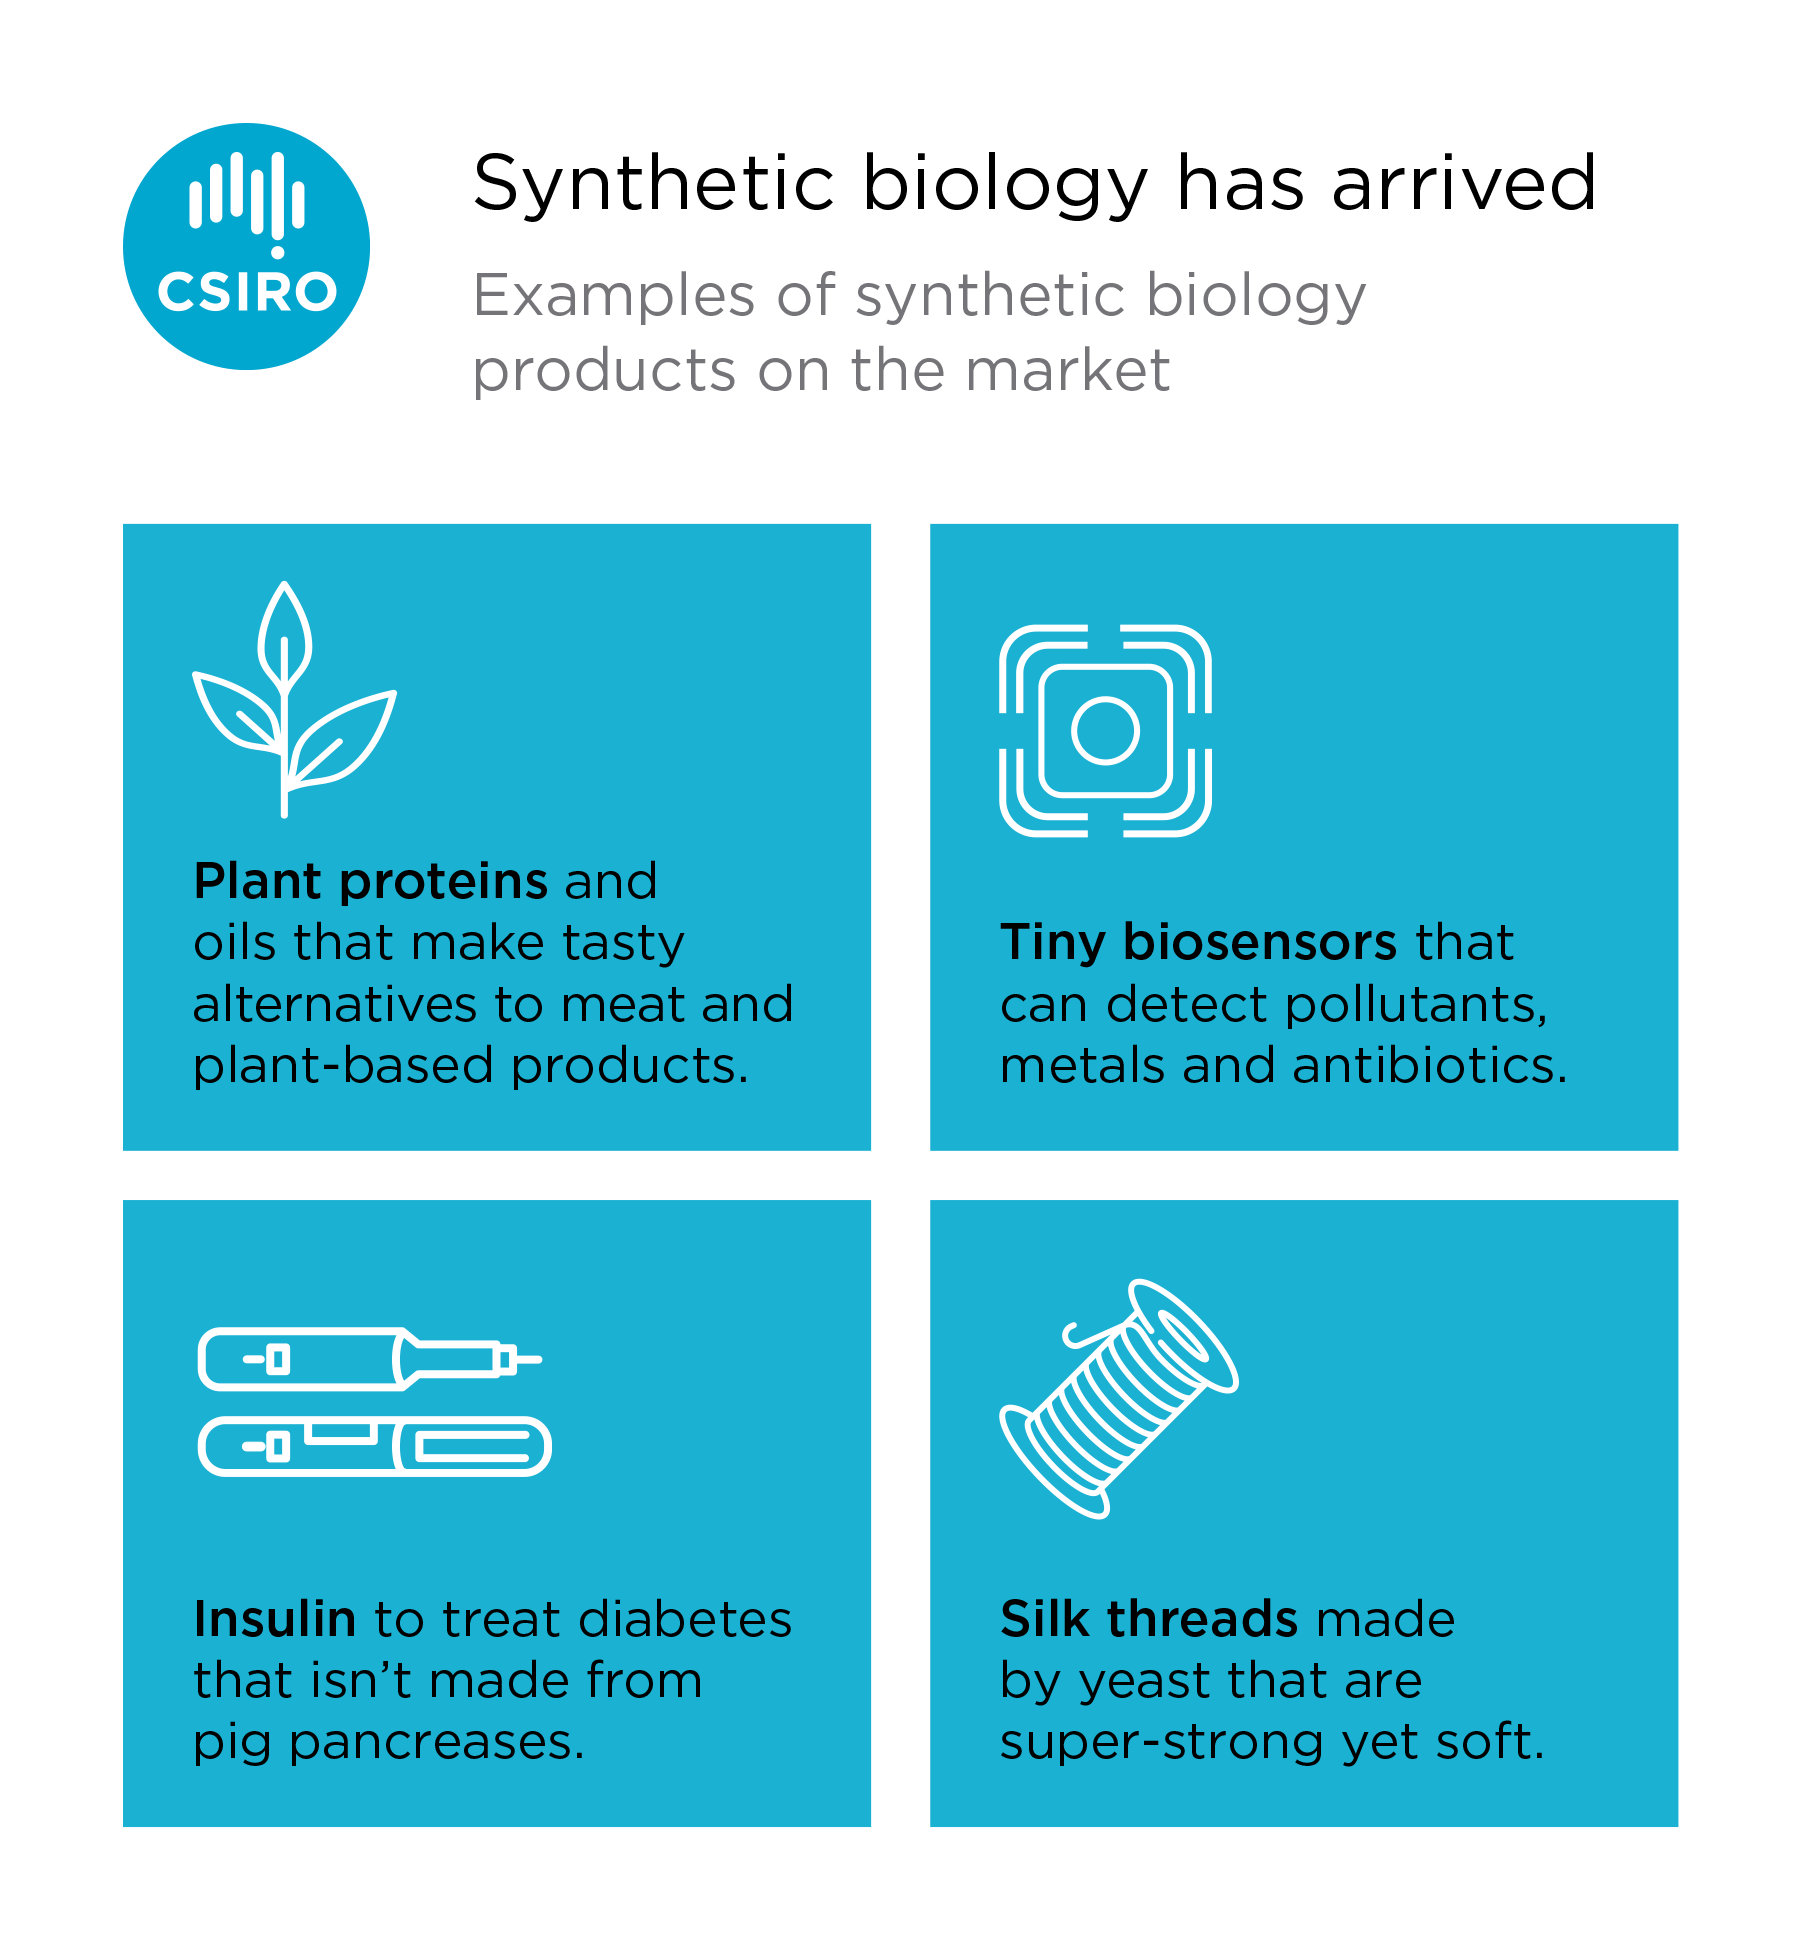 Infographic showing applications of synthetic biology